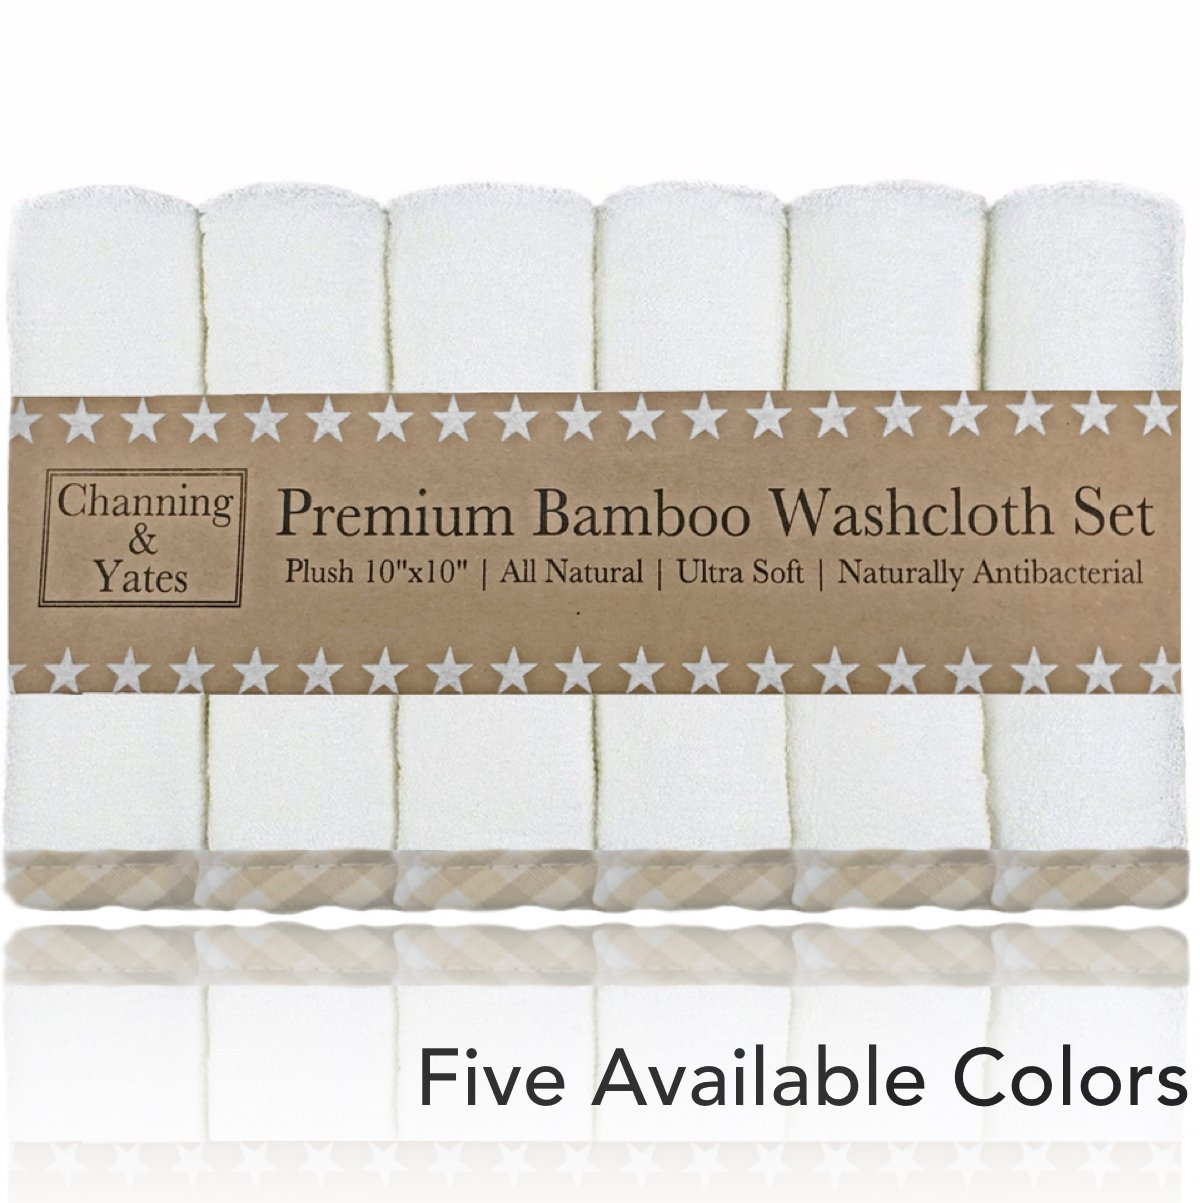 Premium Bamboo Baby Washcloths - (6 Pack) Organic Baby Washcloth - Ultra Soft Face Towels - 10'' x 10'' - Perfect Baby Gifts, Wash Cloths for Eczema (Beige/White)